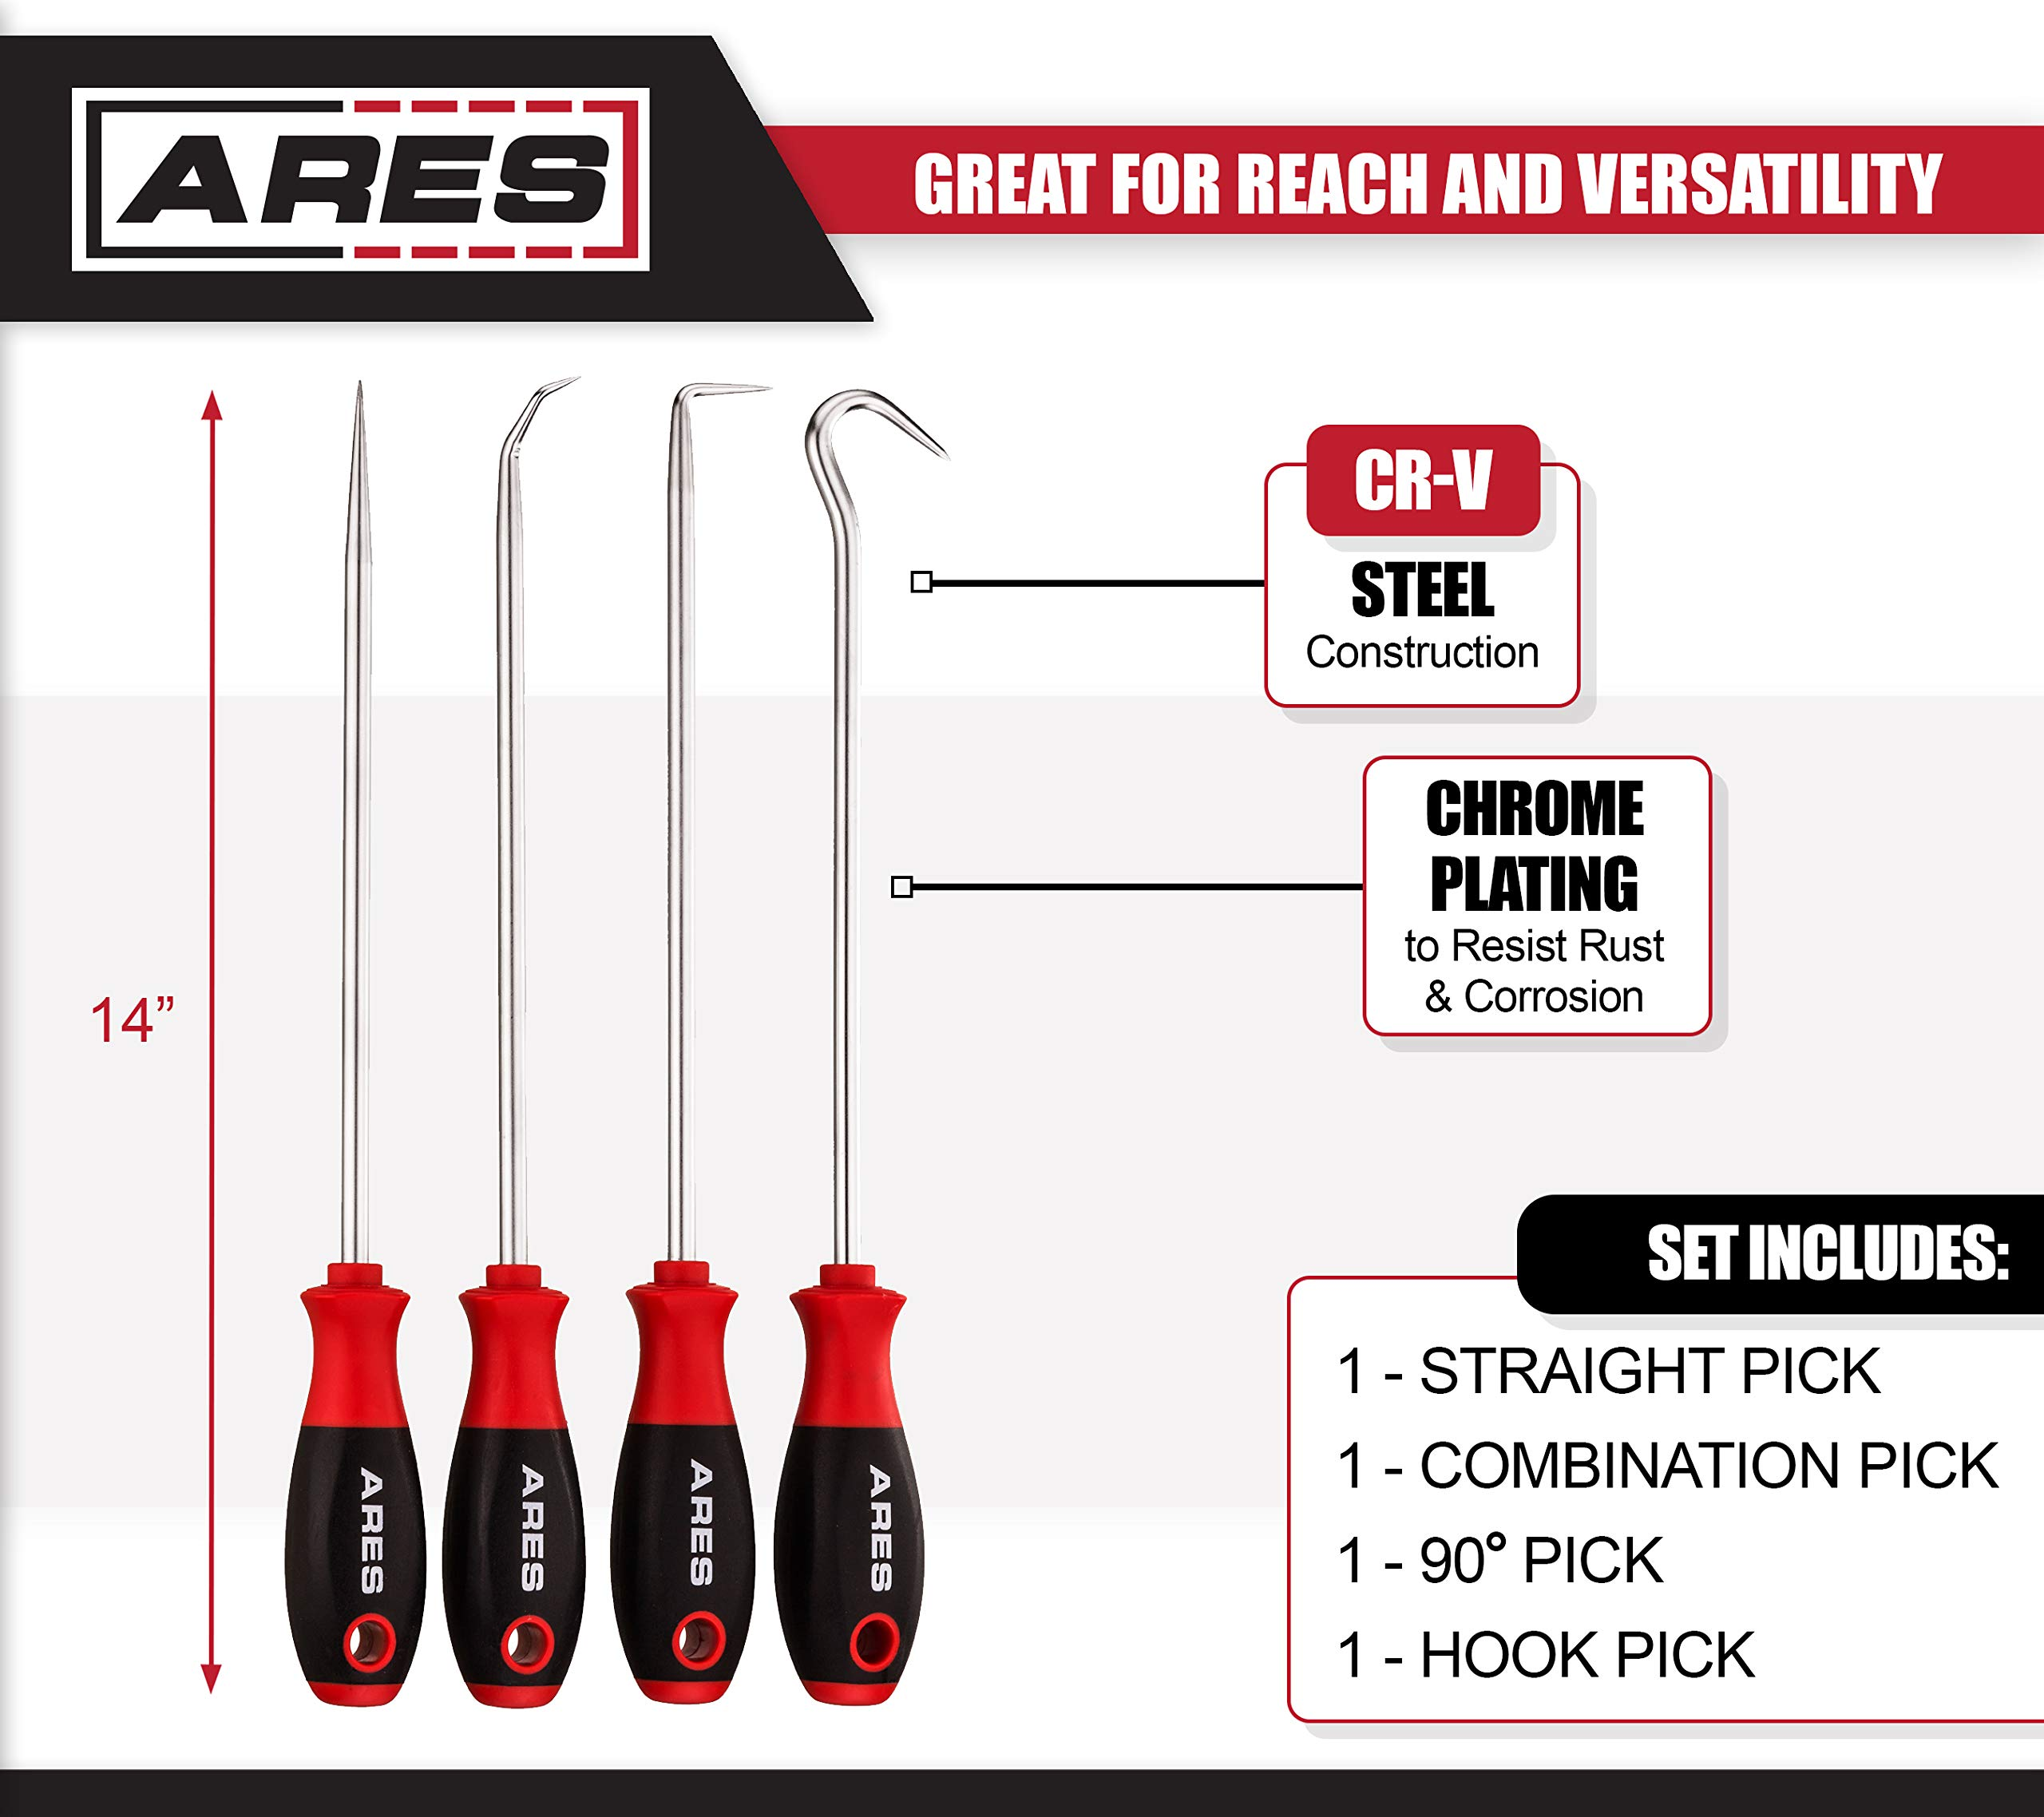 ARES 70246-4-Piece Hook and Pick Set - Includes a Large Straight Pick, 90 Degree Pick, Combination Pick and a Hook Pick - Chrome Vanadium Steel Shafts - Easily Remove Hoses, Gaskets and More by ARES (Image #2)